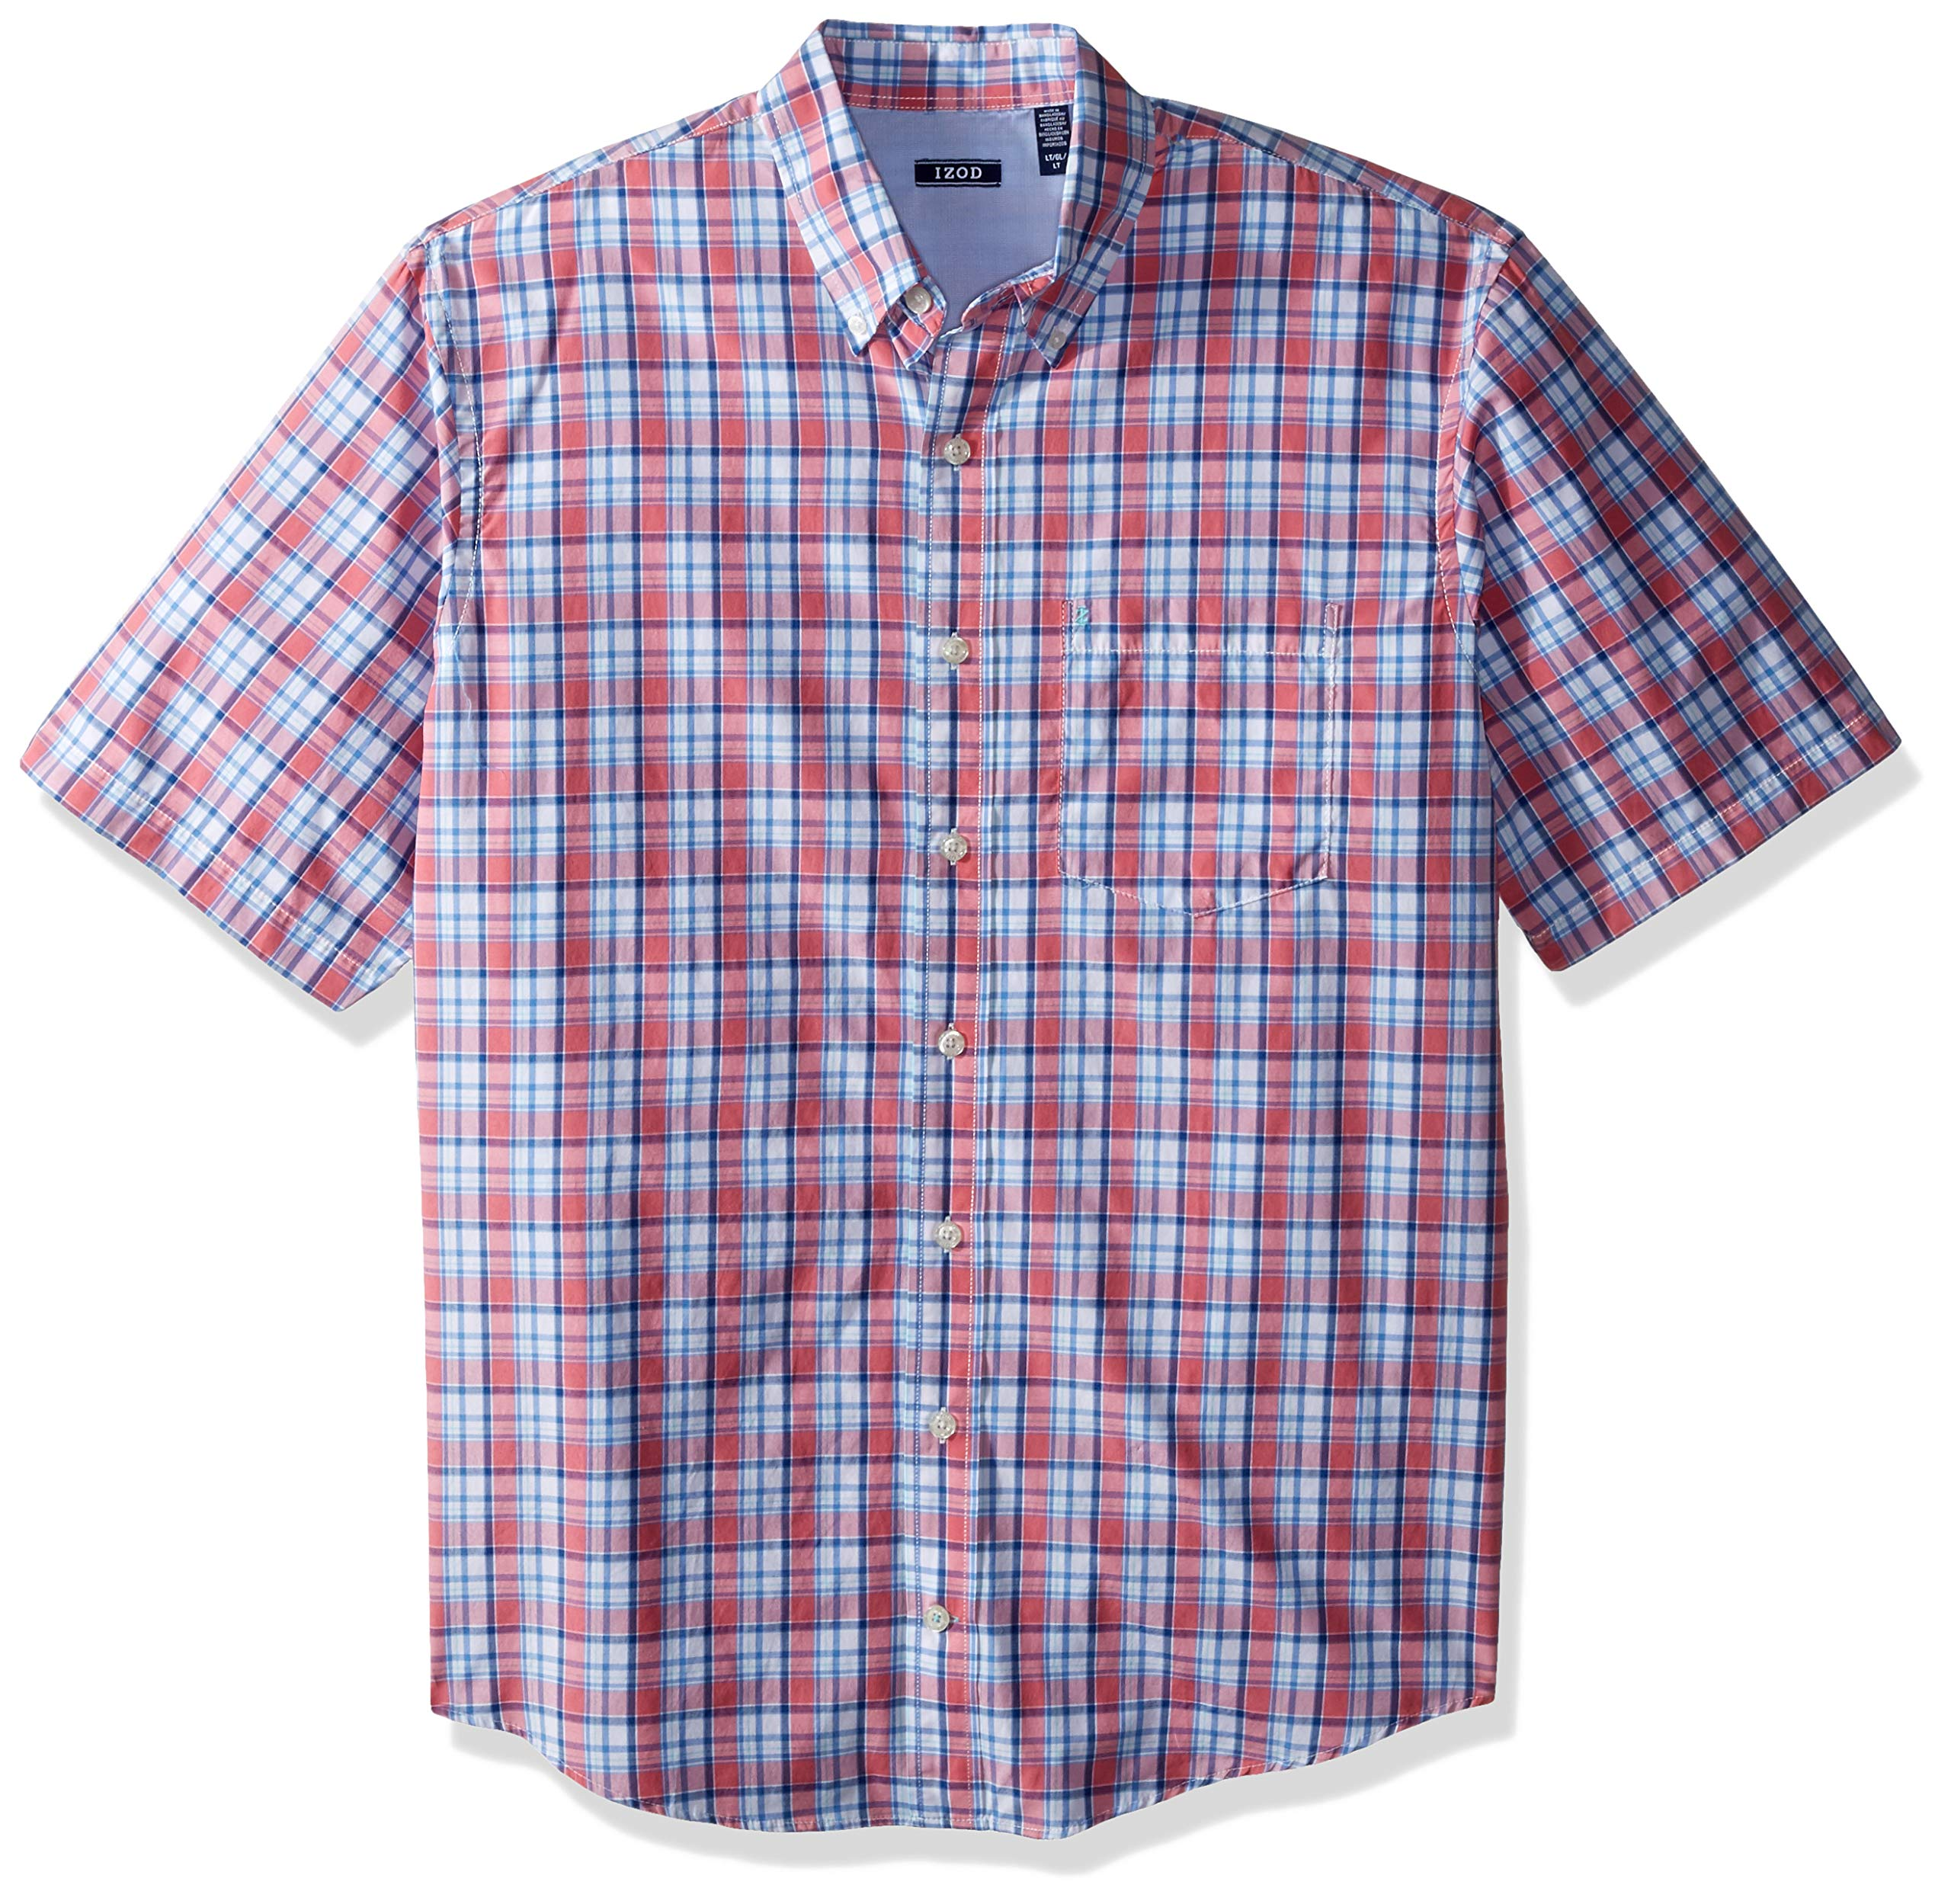 IZOD Men's Big and Tall Breeze Short Sleeve Button Down Plaid Shirt, Pure Rose, 5X-Large